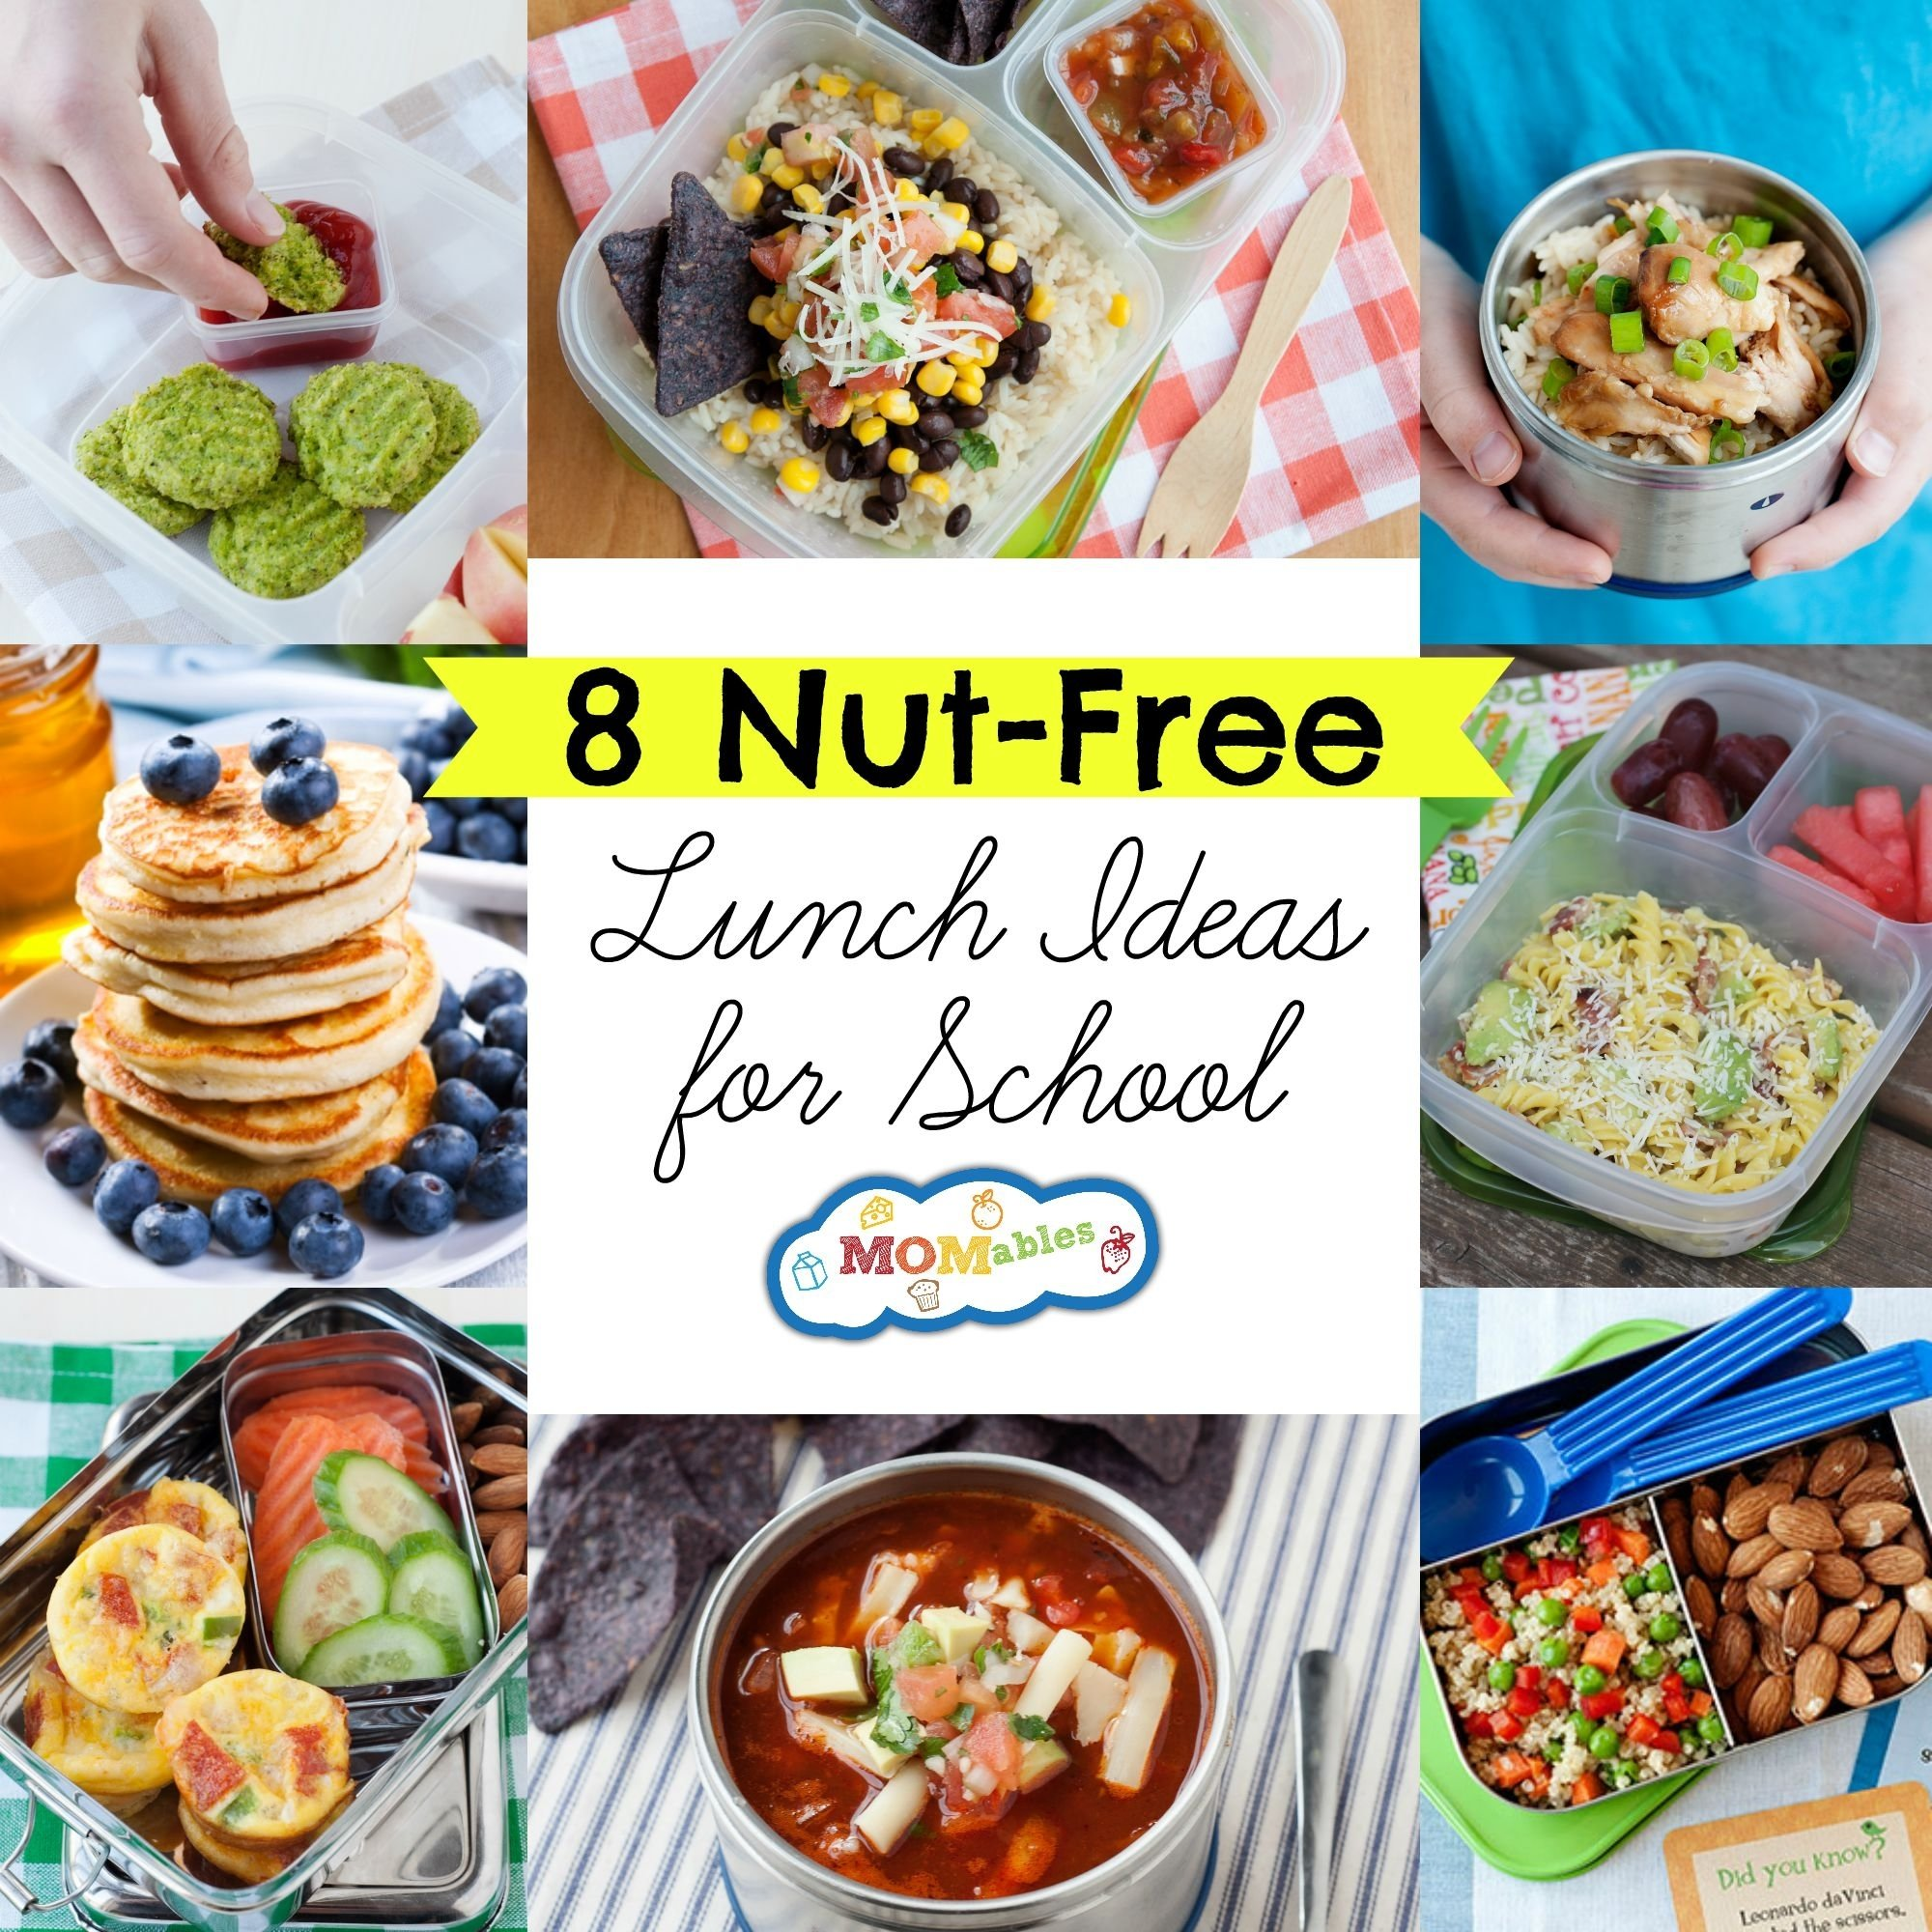 10 Pretty Healthy Lunch Ideas For Picky Eaters 8 nut free lunch ideas for school momables 9 2020